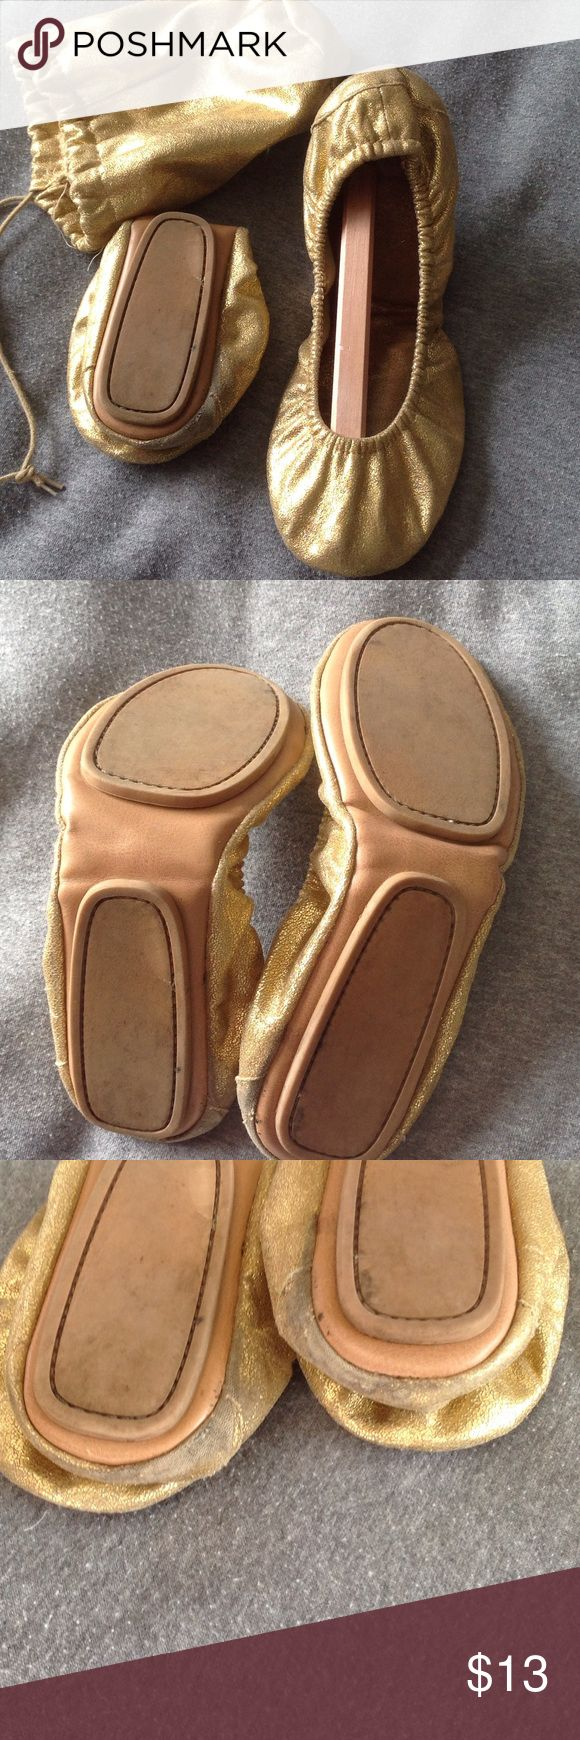 Gold ballet shoes Folds into pouch. Distressed gold color. Slight wear on heels as pictured. Comes w pouch. Great for long nights out. Shoes Flats & Loafers